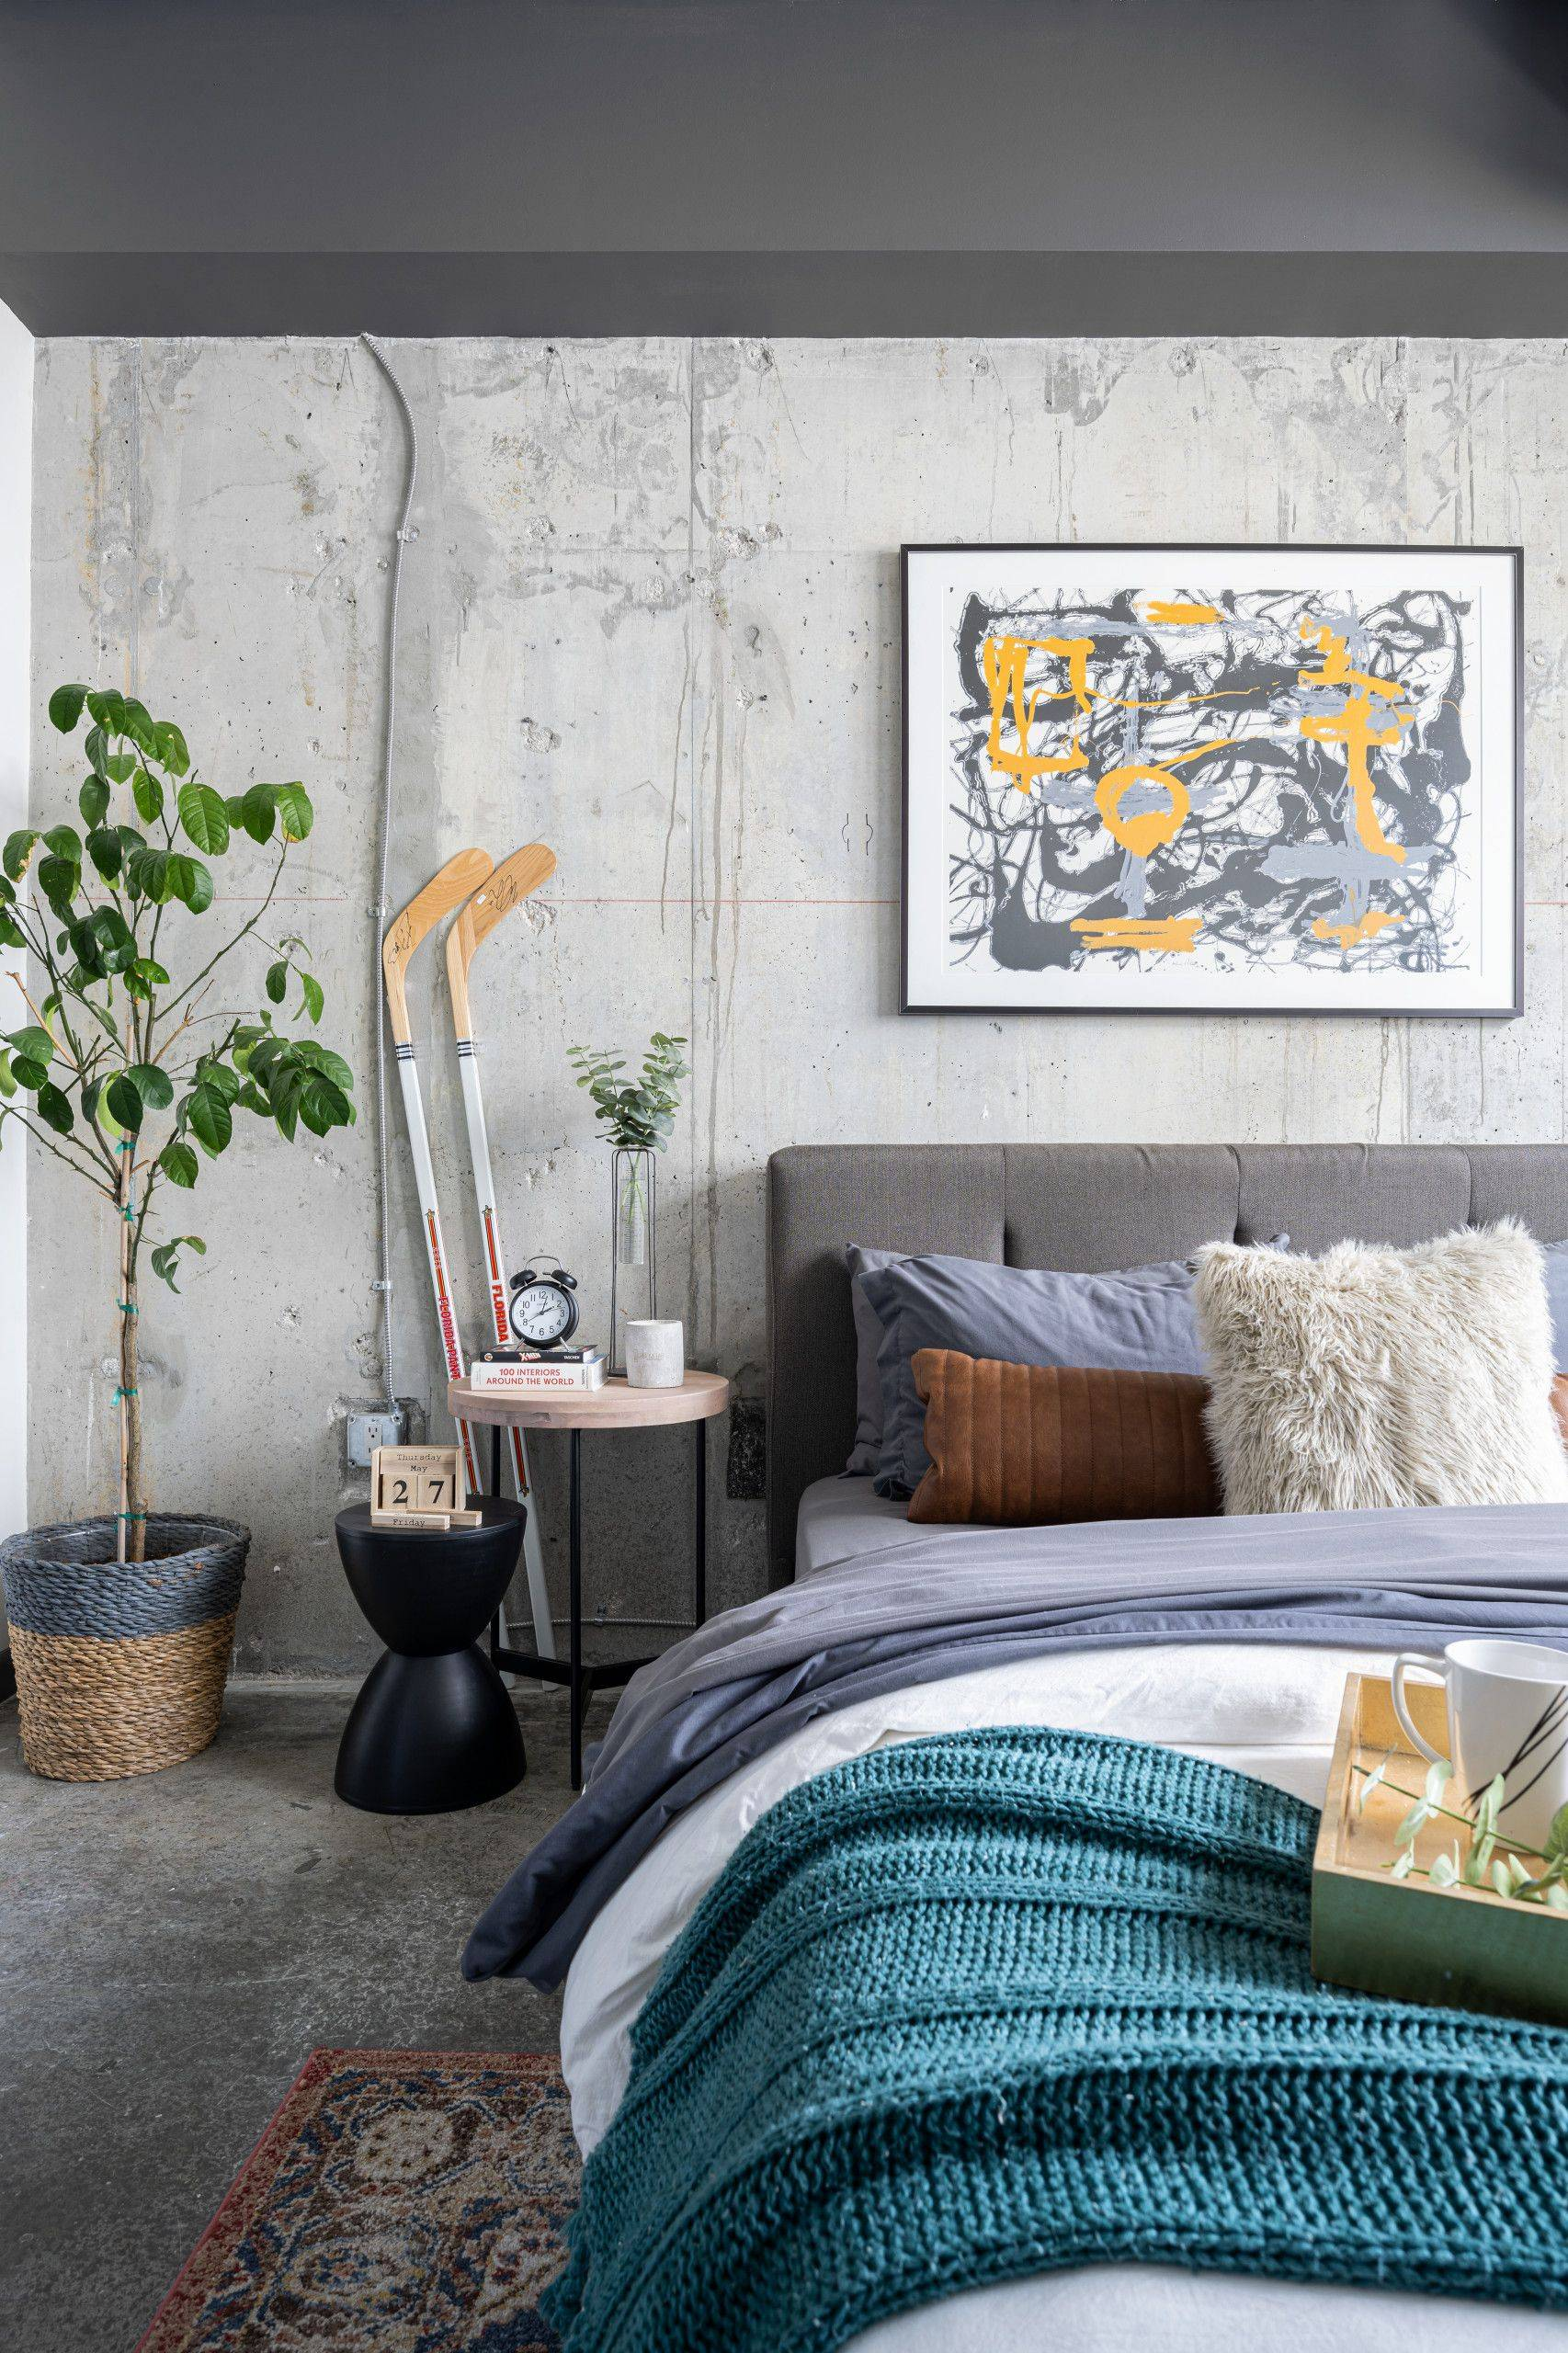 Adding-a-plant-in-the-corner-is-never-a-bad-idea-in-the-industrial-bedroom-64556